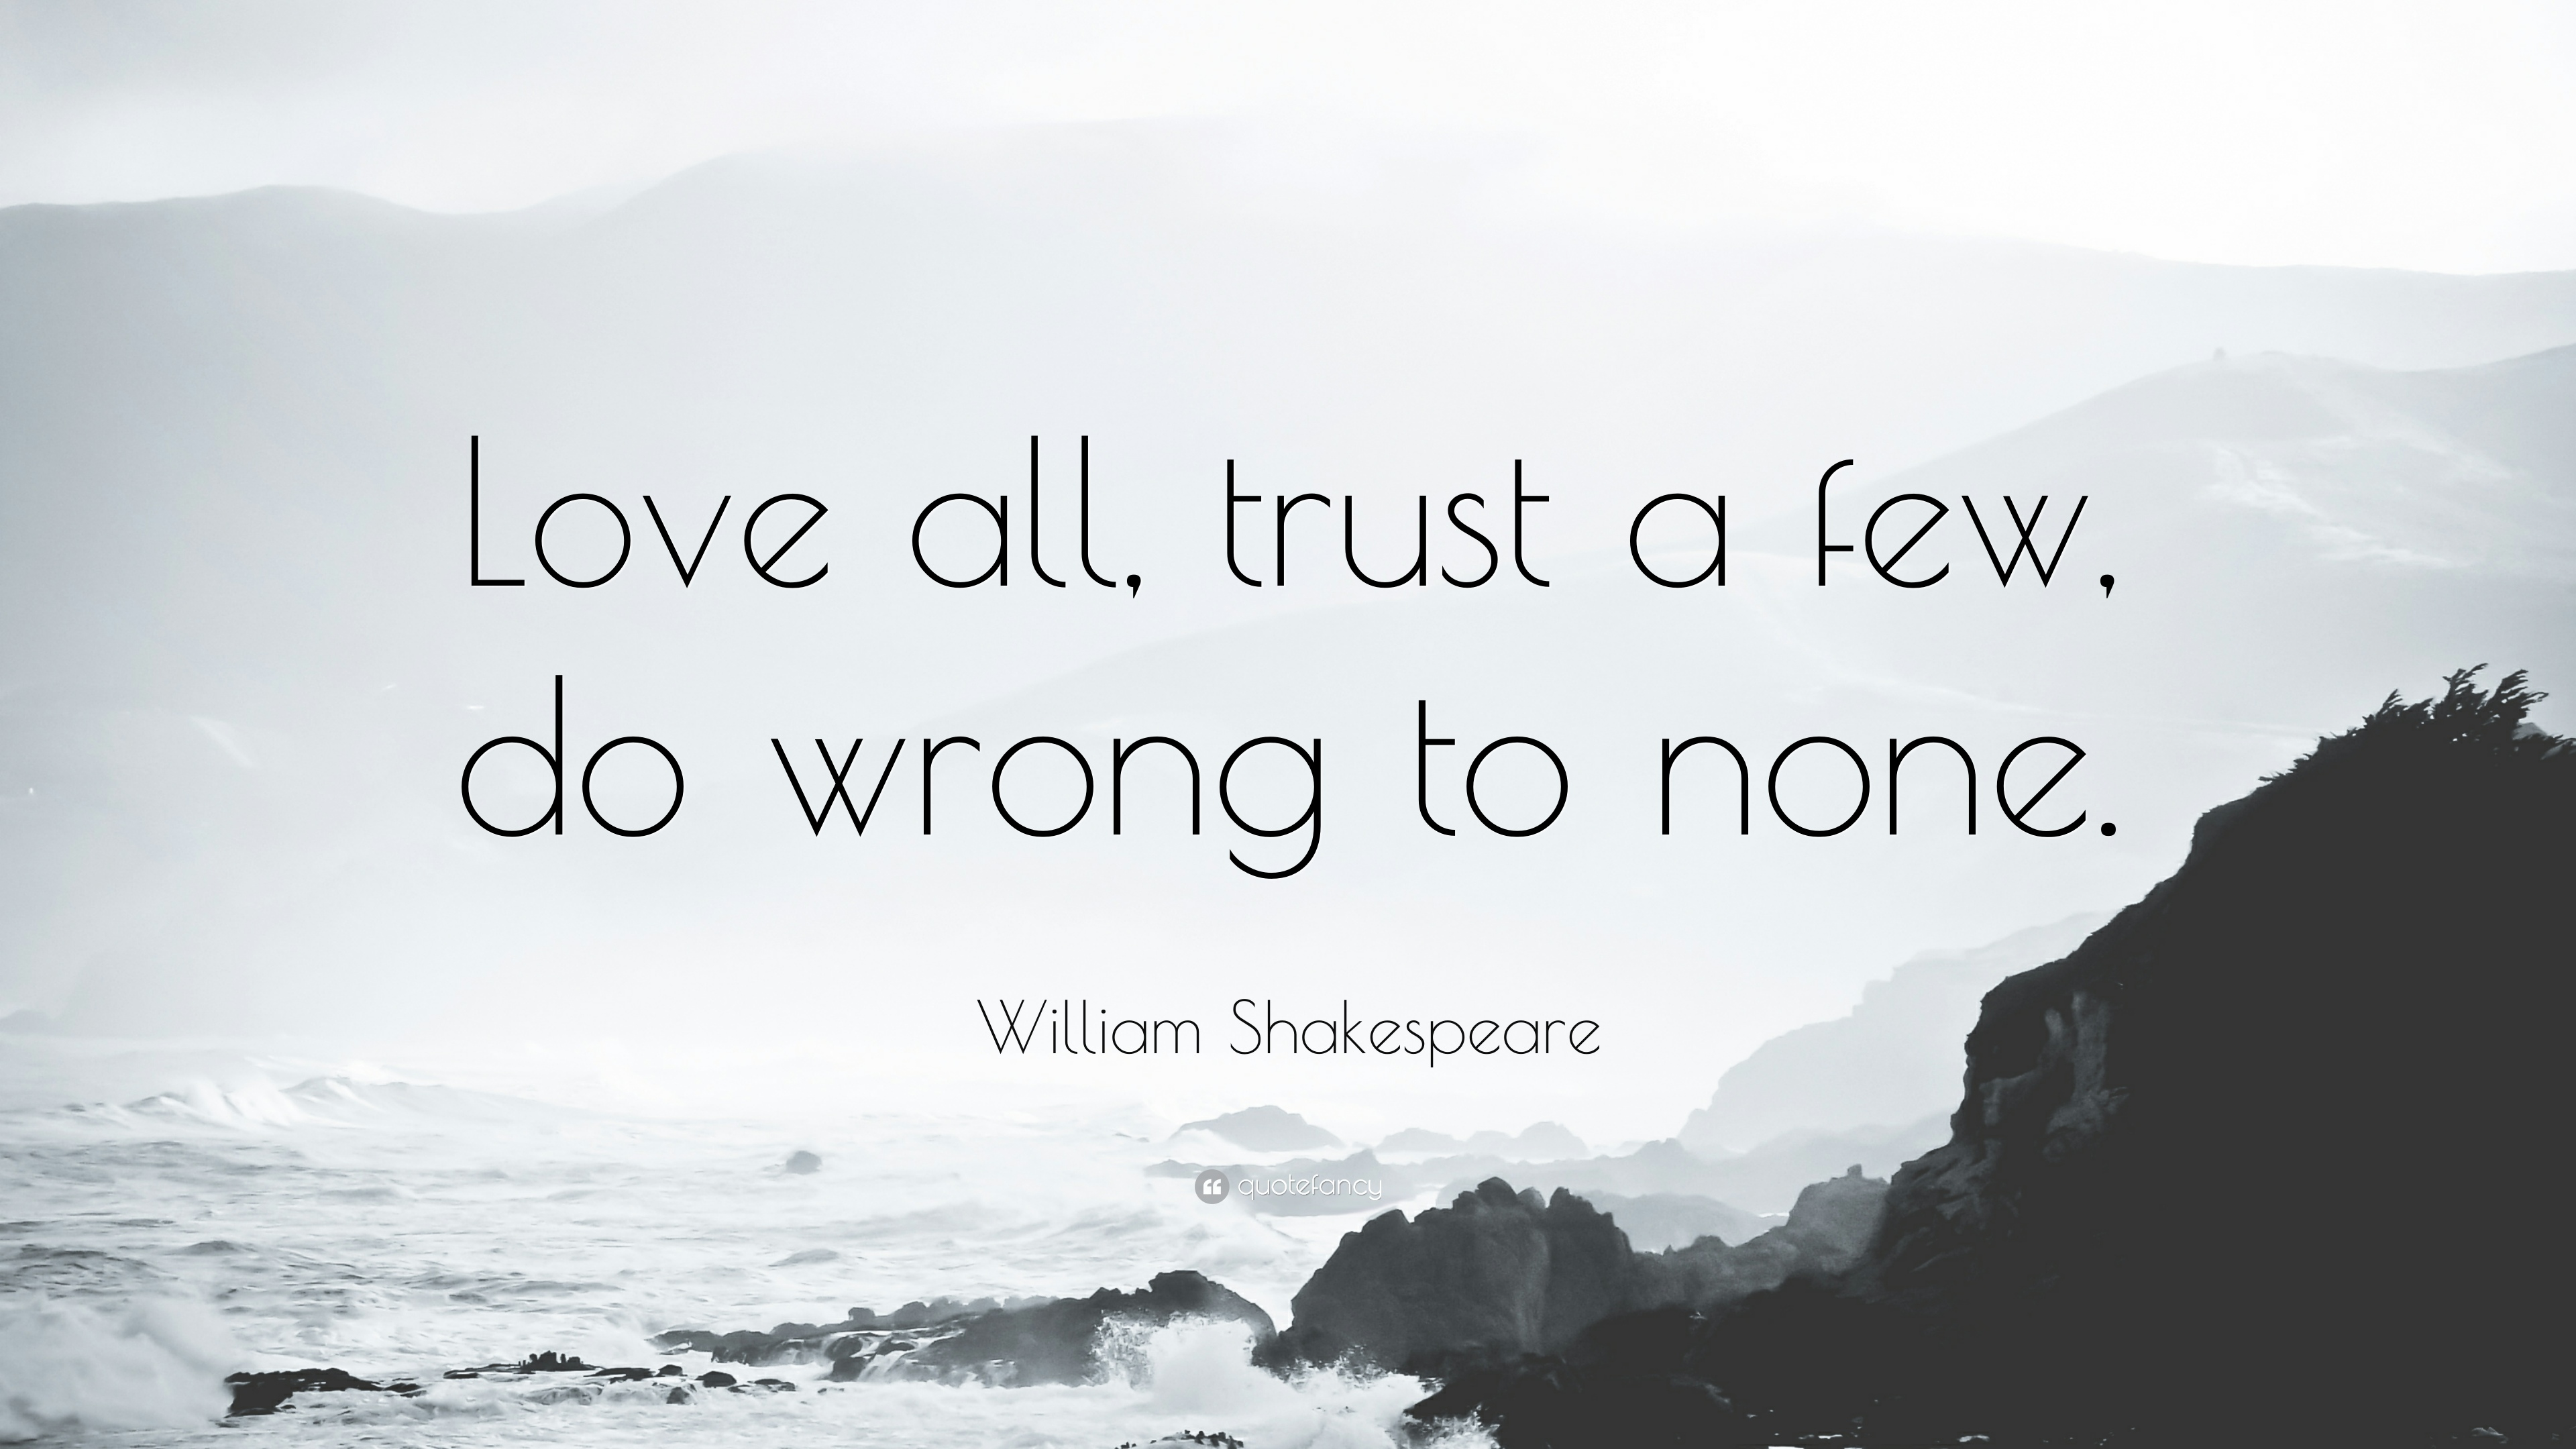 Shakespeare In Love Quotes William Shakespeare Quote U201cLove All Trust A Few  Do Wrong To